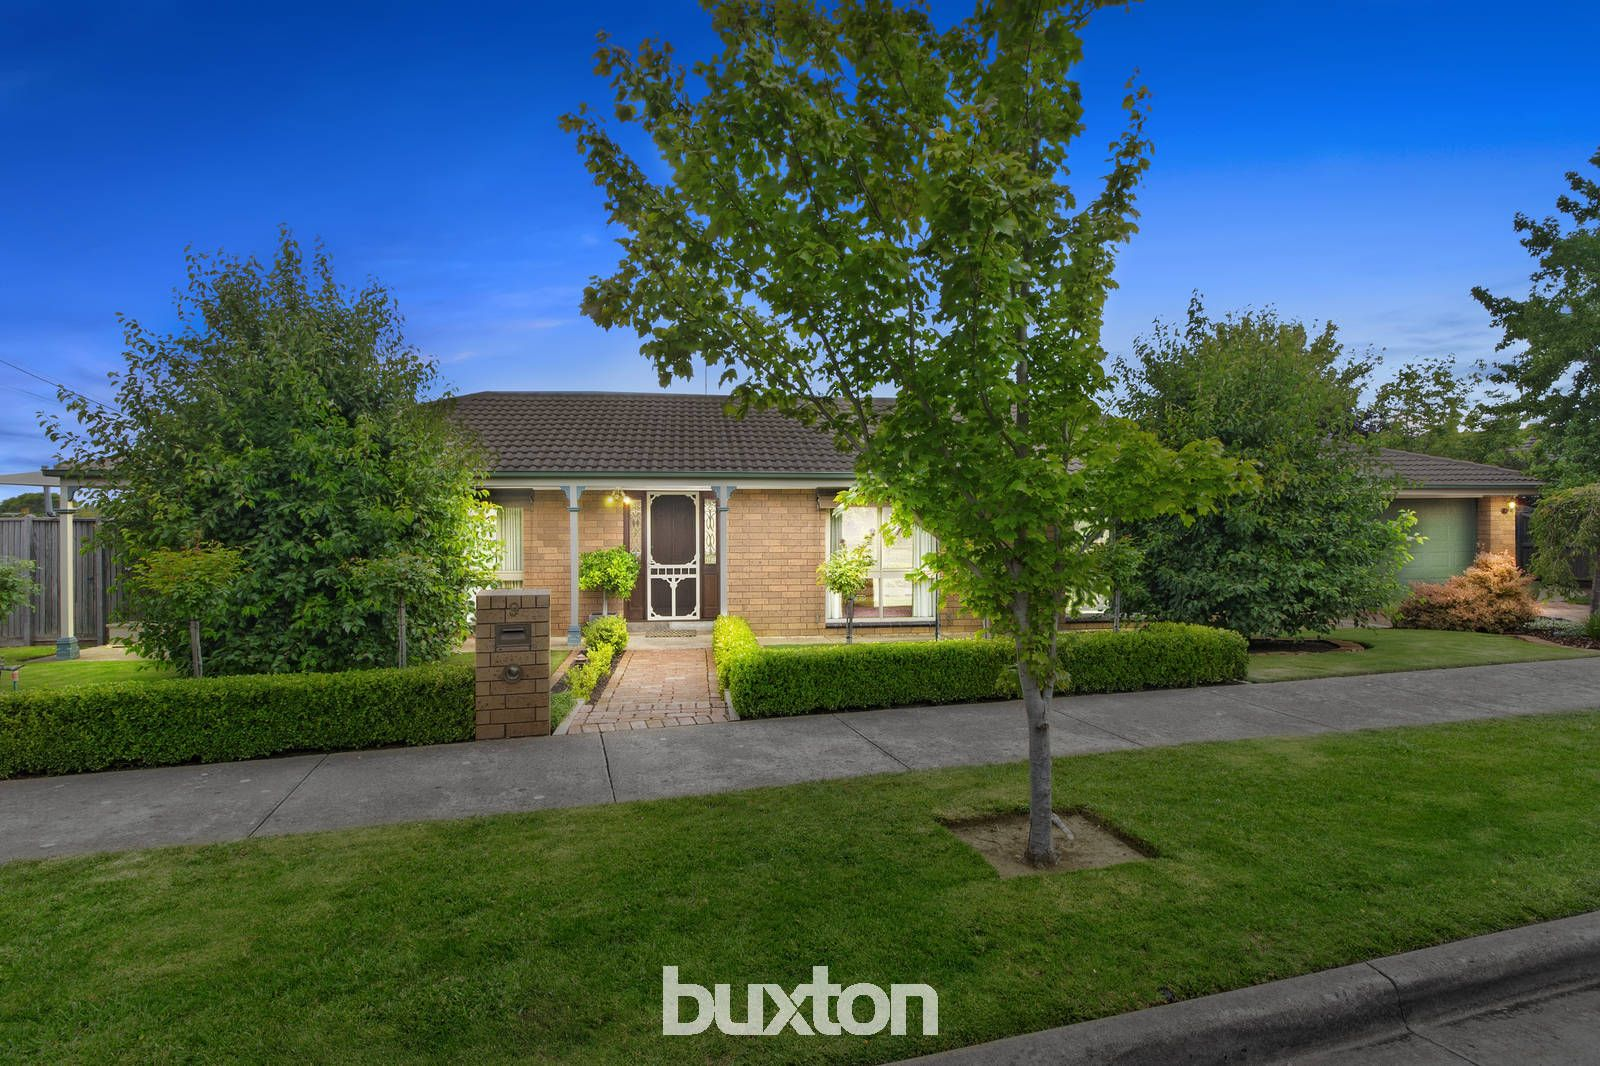 Sold 9 Fryers Road, Highton VIC 3216 on 07 Mar 2020